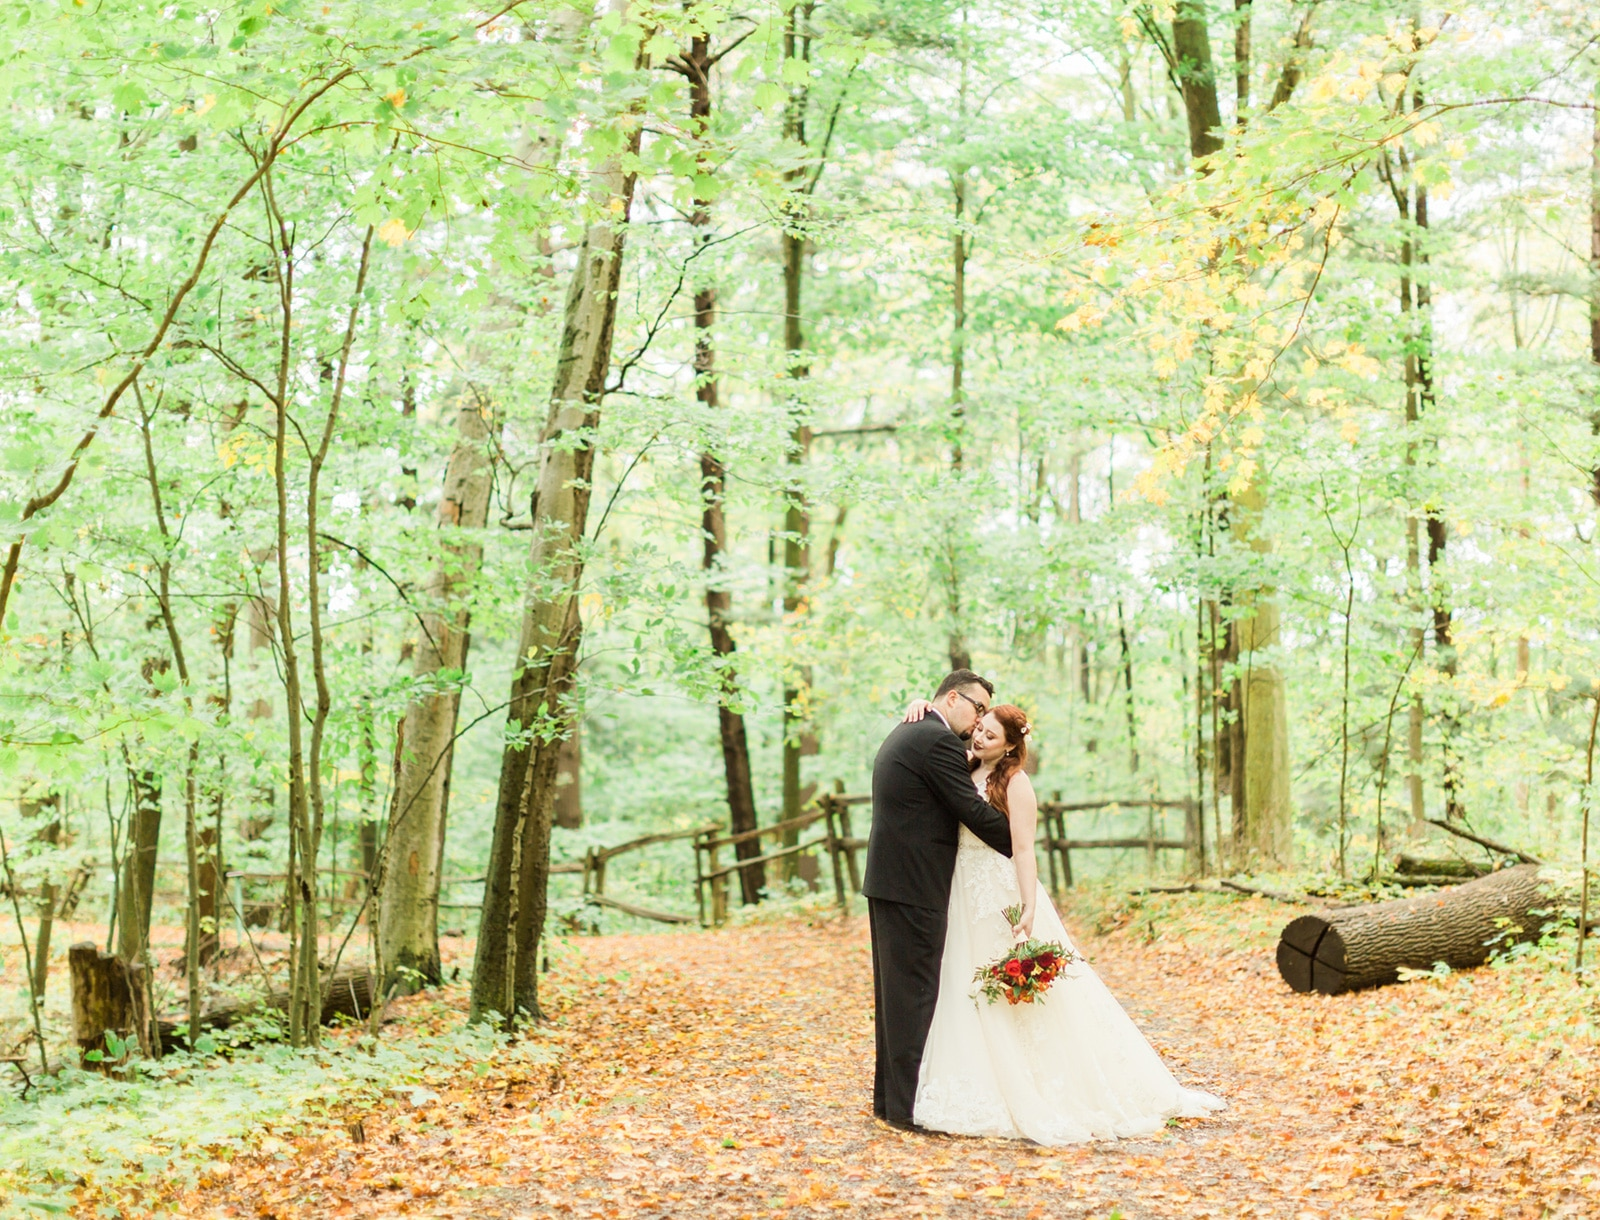 Romantic Outdoor Fall Wedding: Rustic Romantic Forest Autumn